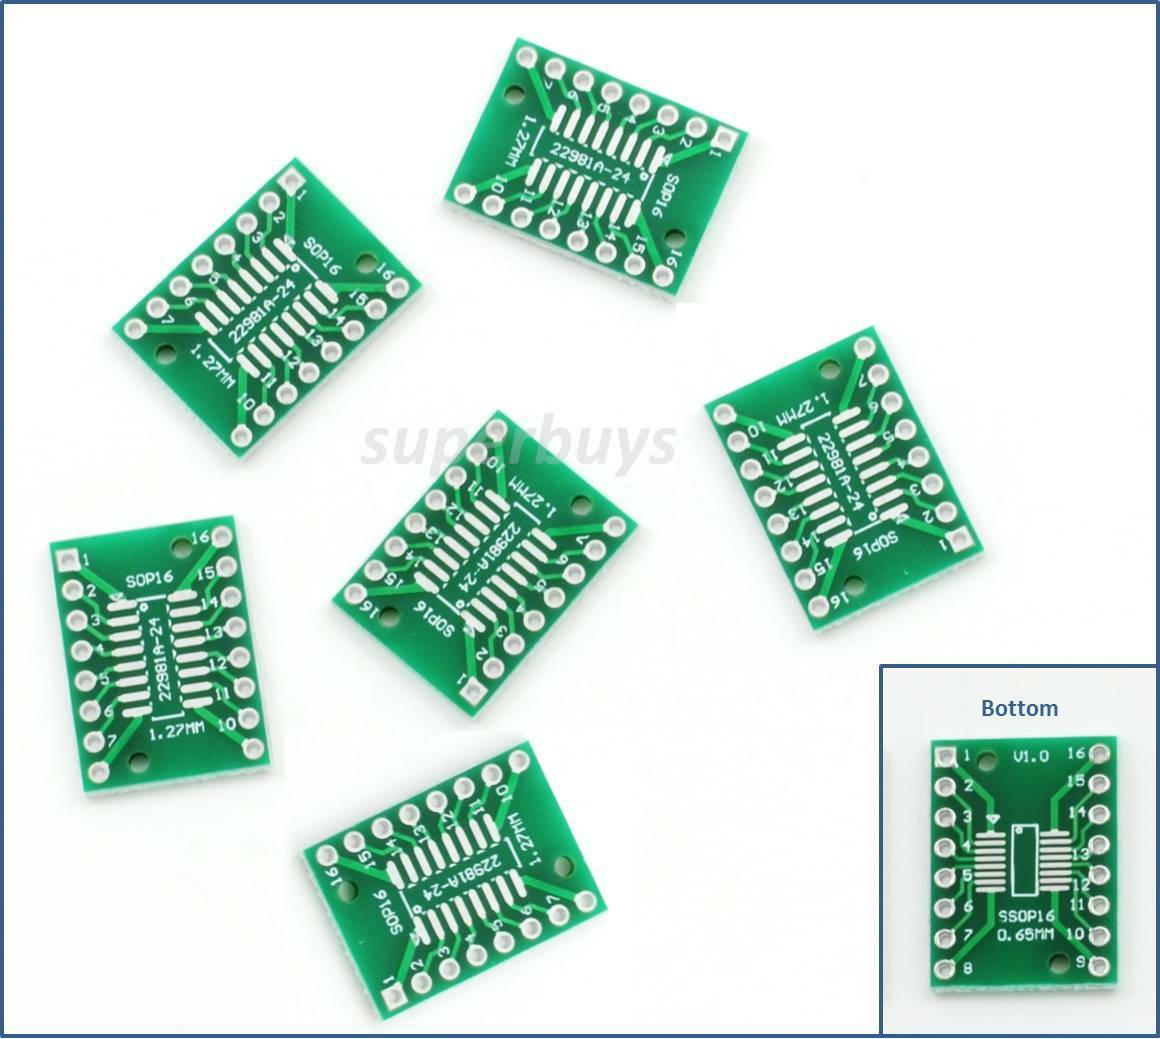 6pc Sop16 So16 Tssop16 Ssop16 Soic To Dip16 Adapter Breakout Pcb Soldering Prototype Copper Printed Circuit Board 50x70mm 2 Ebay 1 Of 3free Shipping